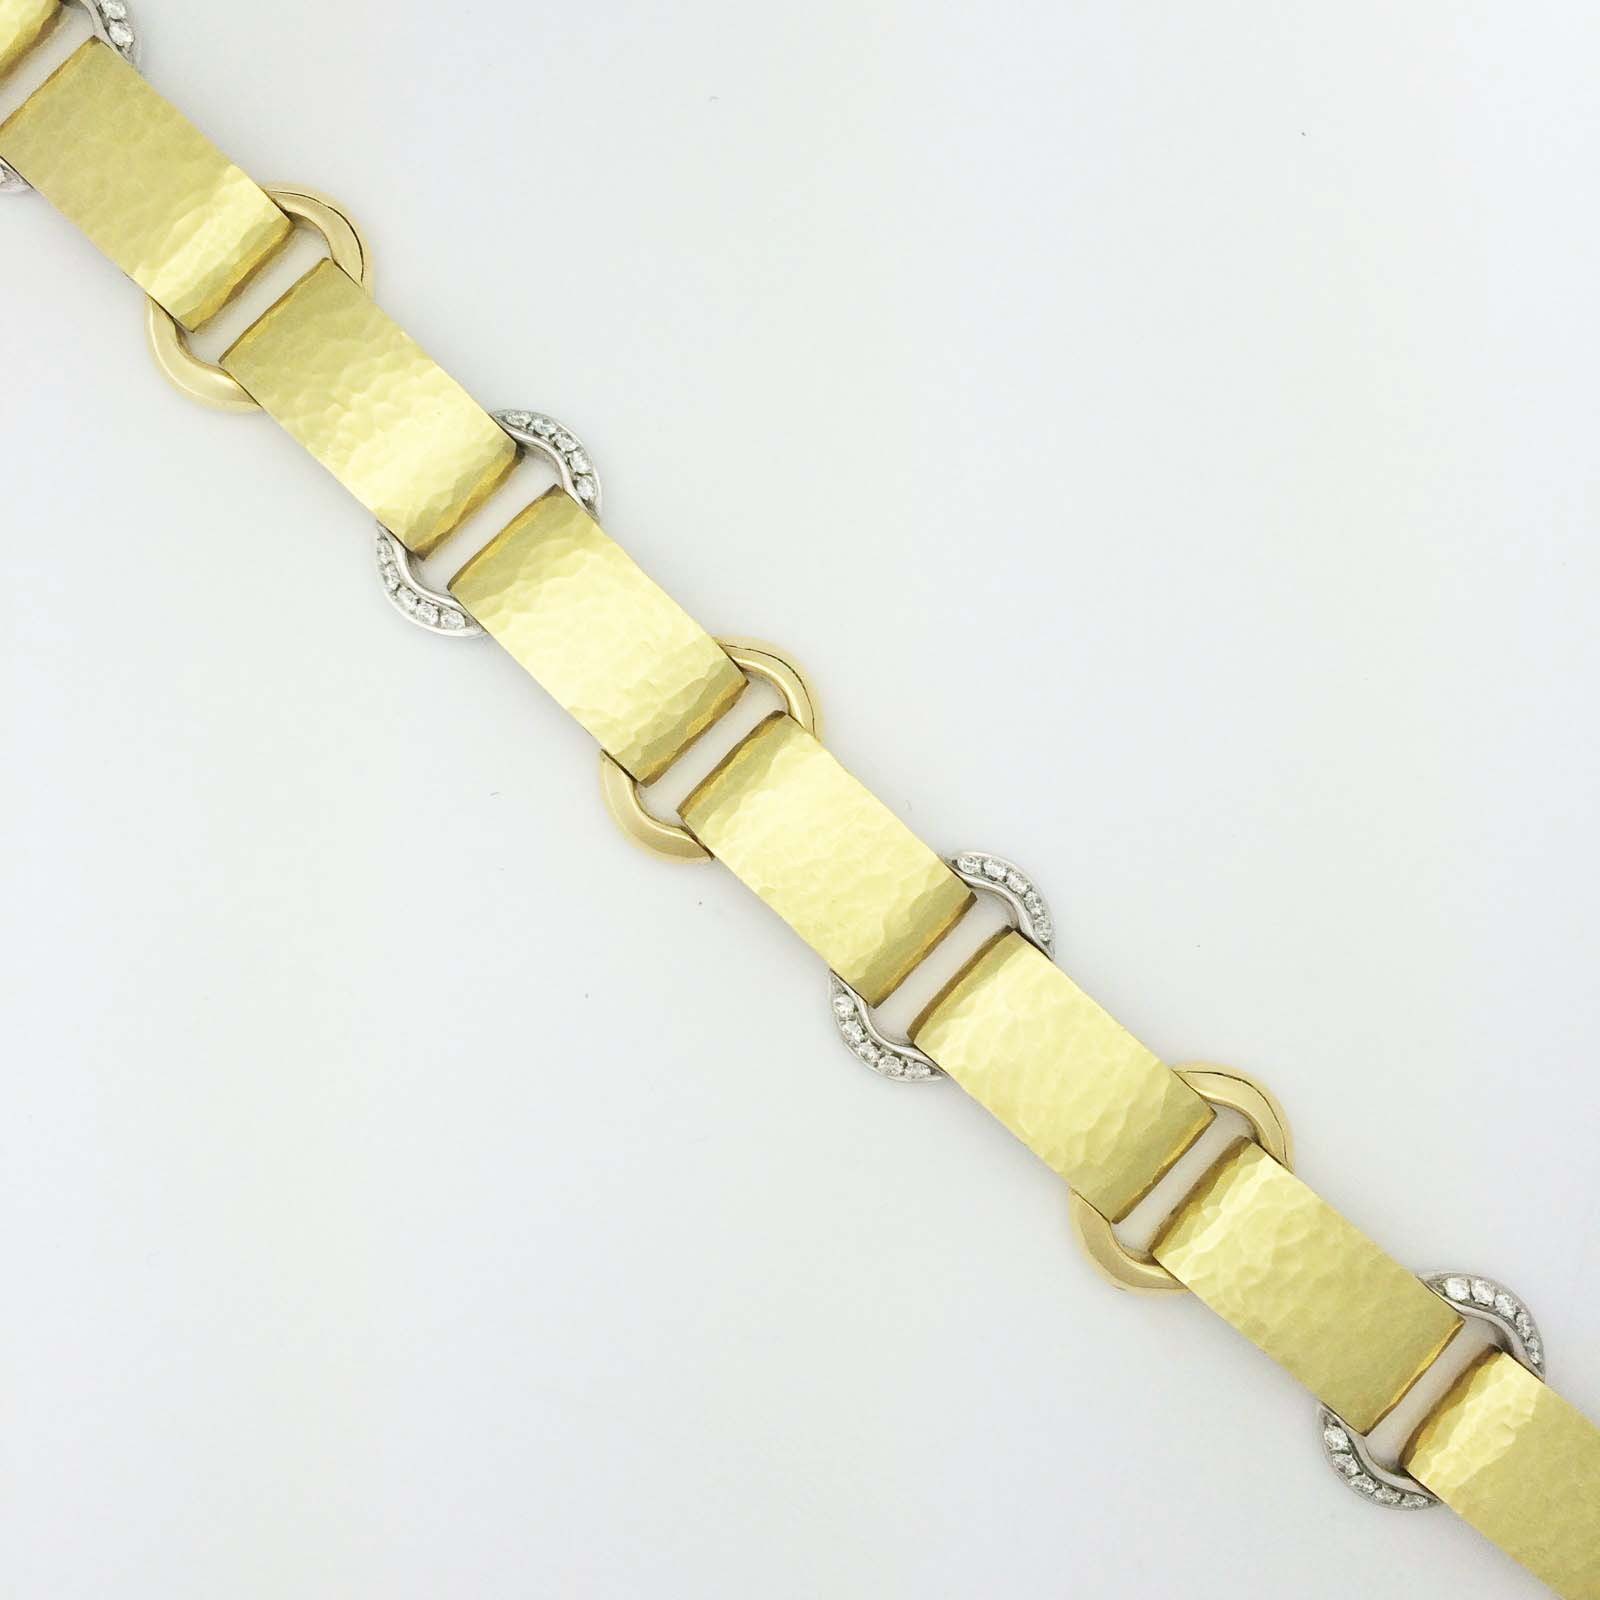 Vendorafa handmade bracelet in 18k yellow gold with diamonds